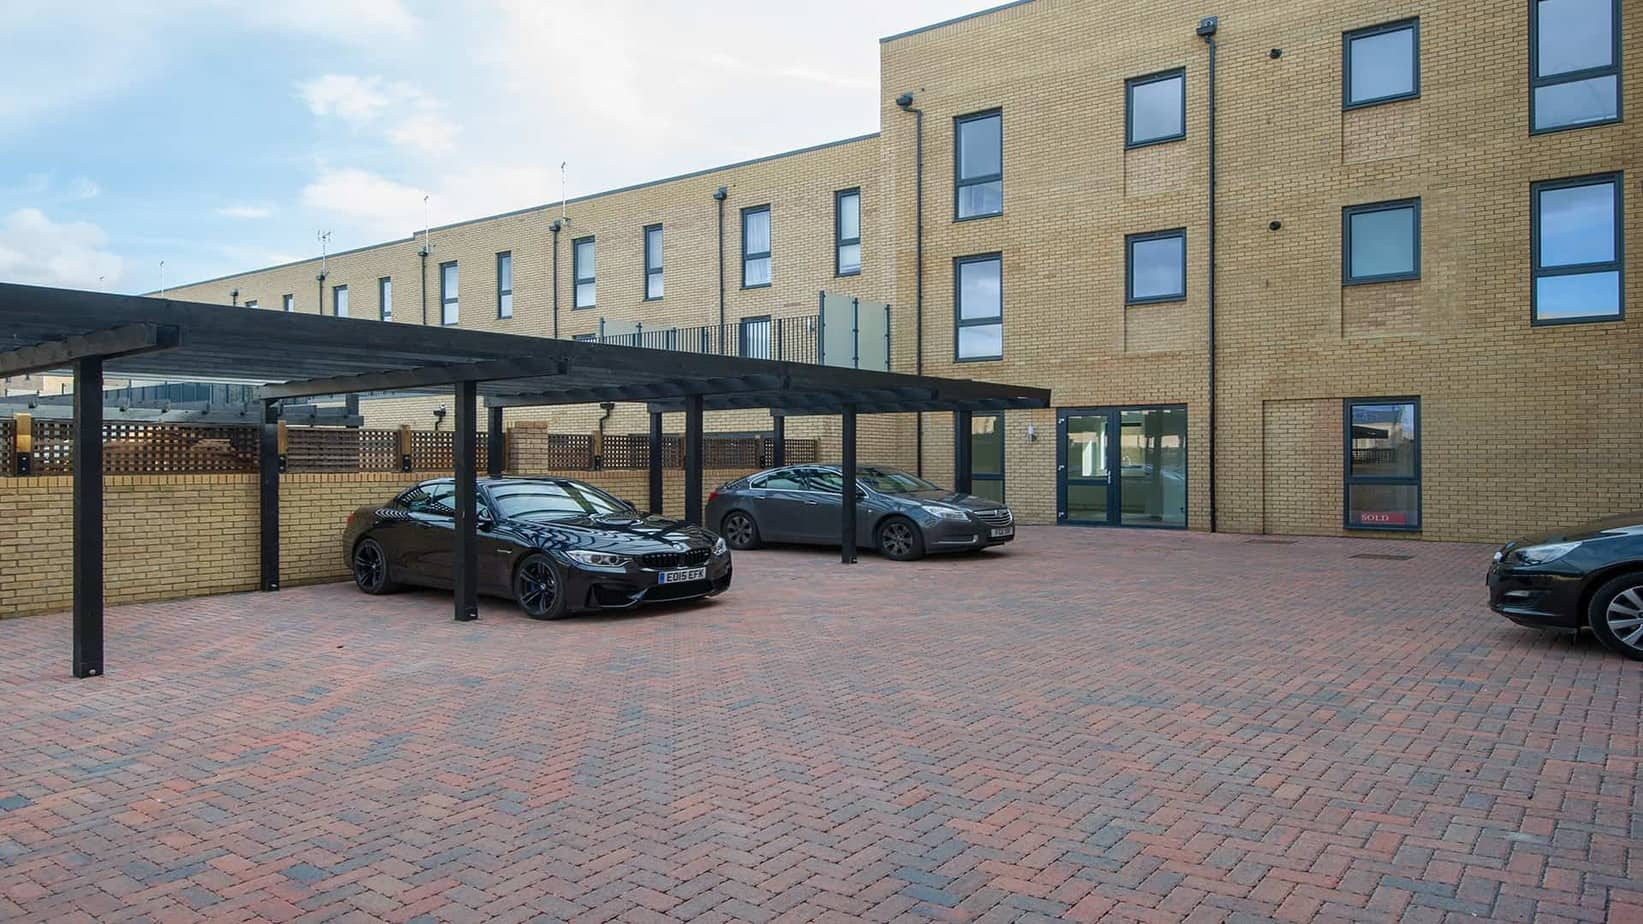 Tailored Stays De Havilland House comes with parking space